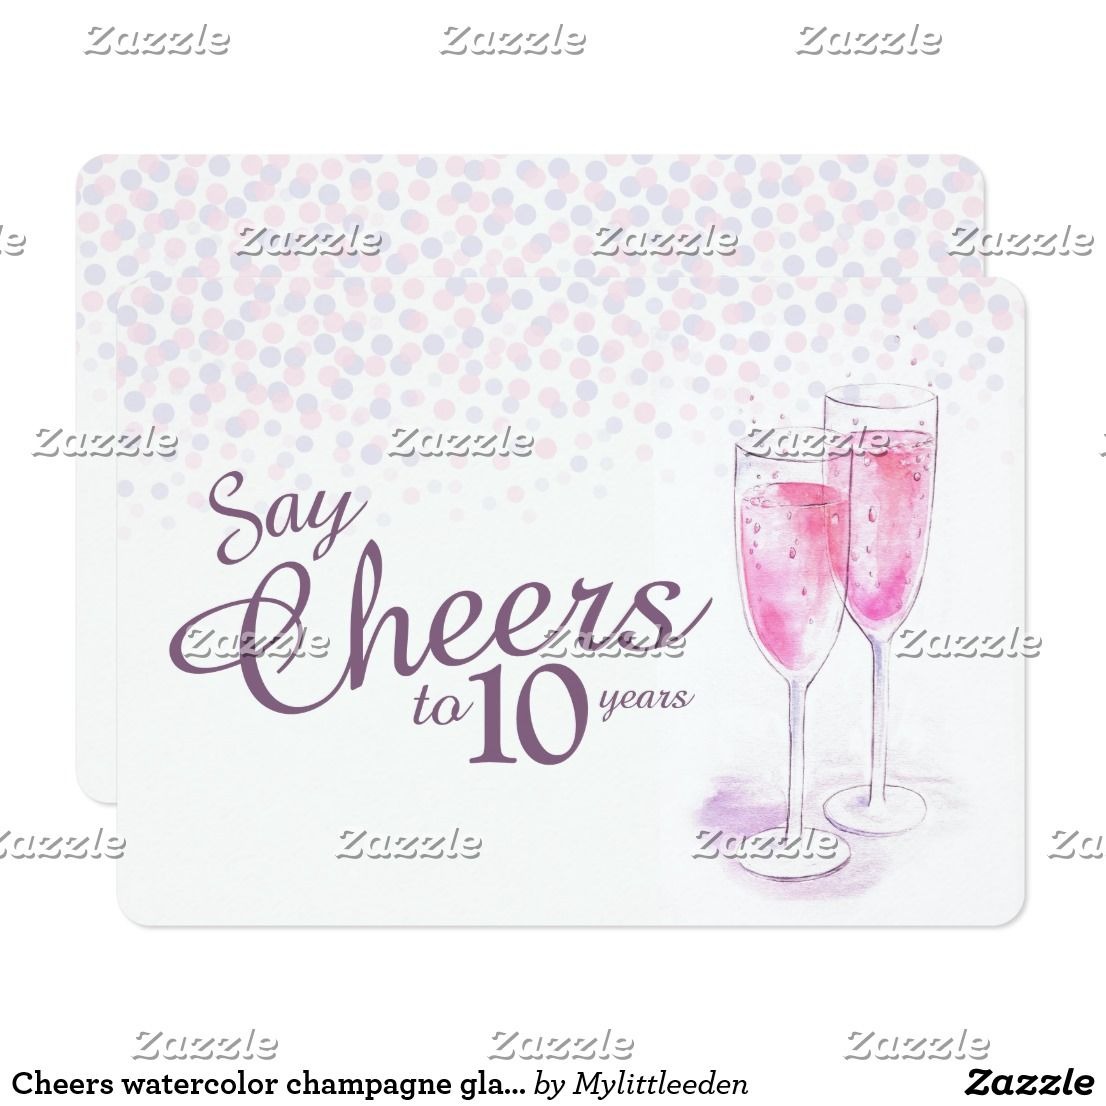 Cheers watercolor champagne glasses anniversary card | Anniversary ...